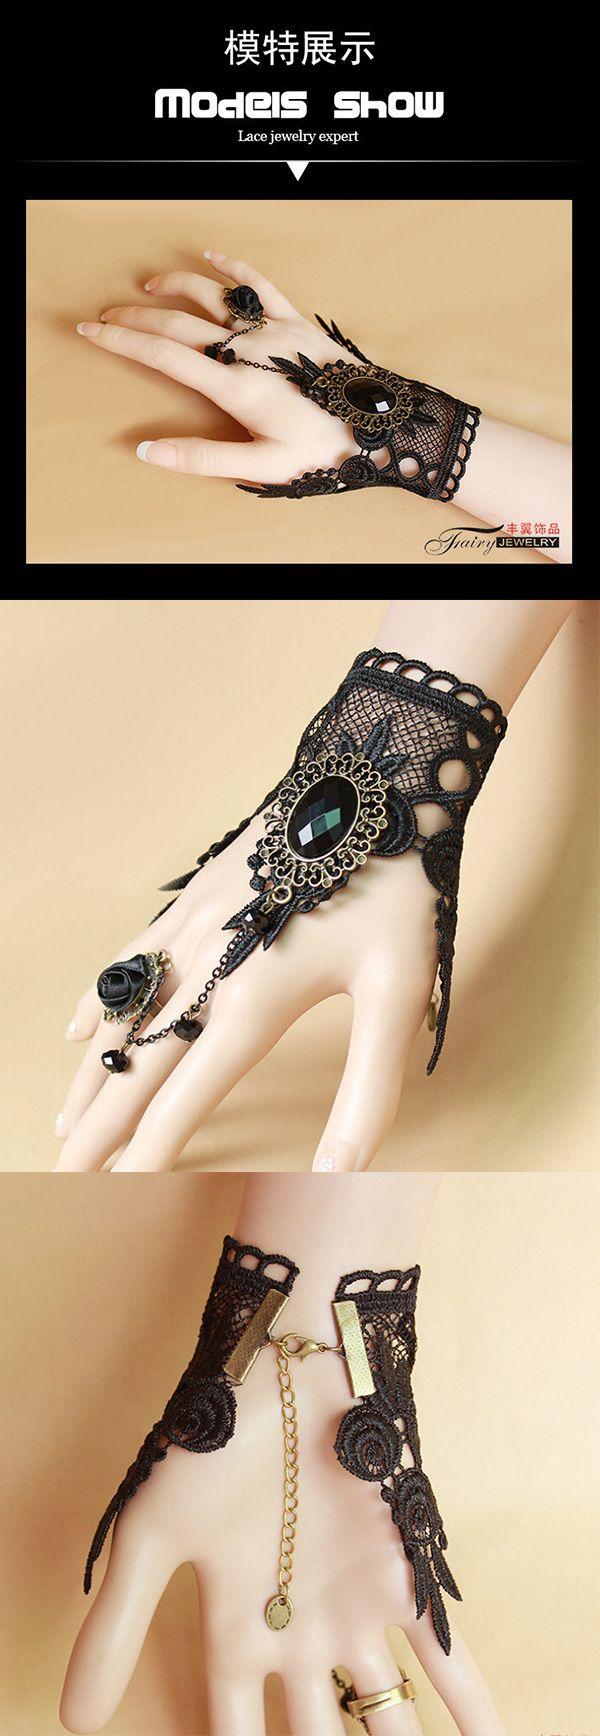 fashion accessories rose sexy lace jewel high-grade bracelet Masquerade Party Fancy Dress Costume * gothic jewelry, gothic bracelet, gothic accessories, gothic accessories jewellery, gothic jewelry & accessories